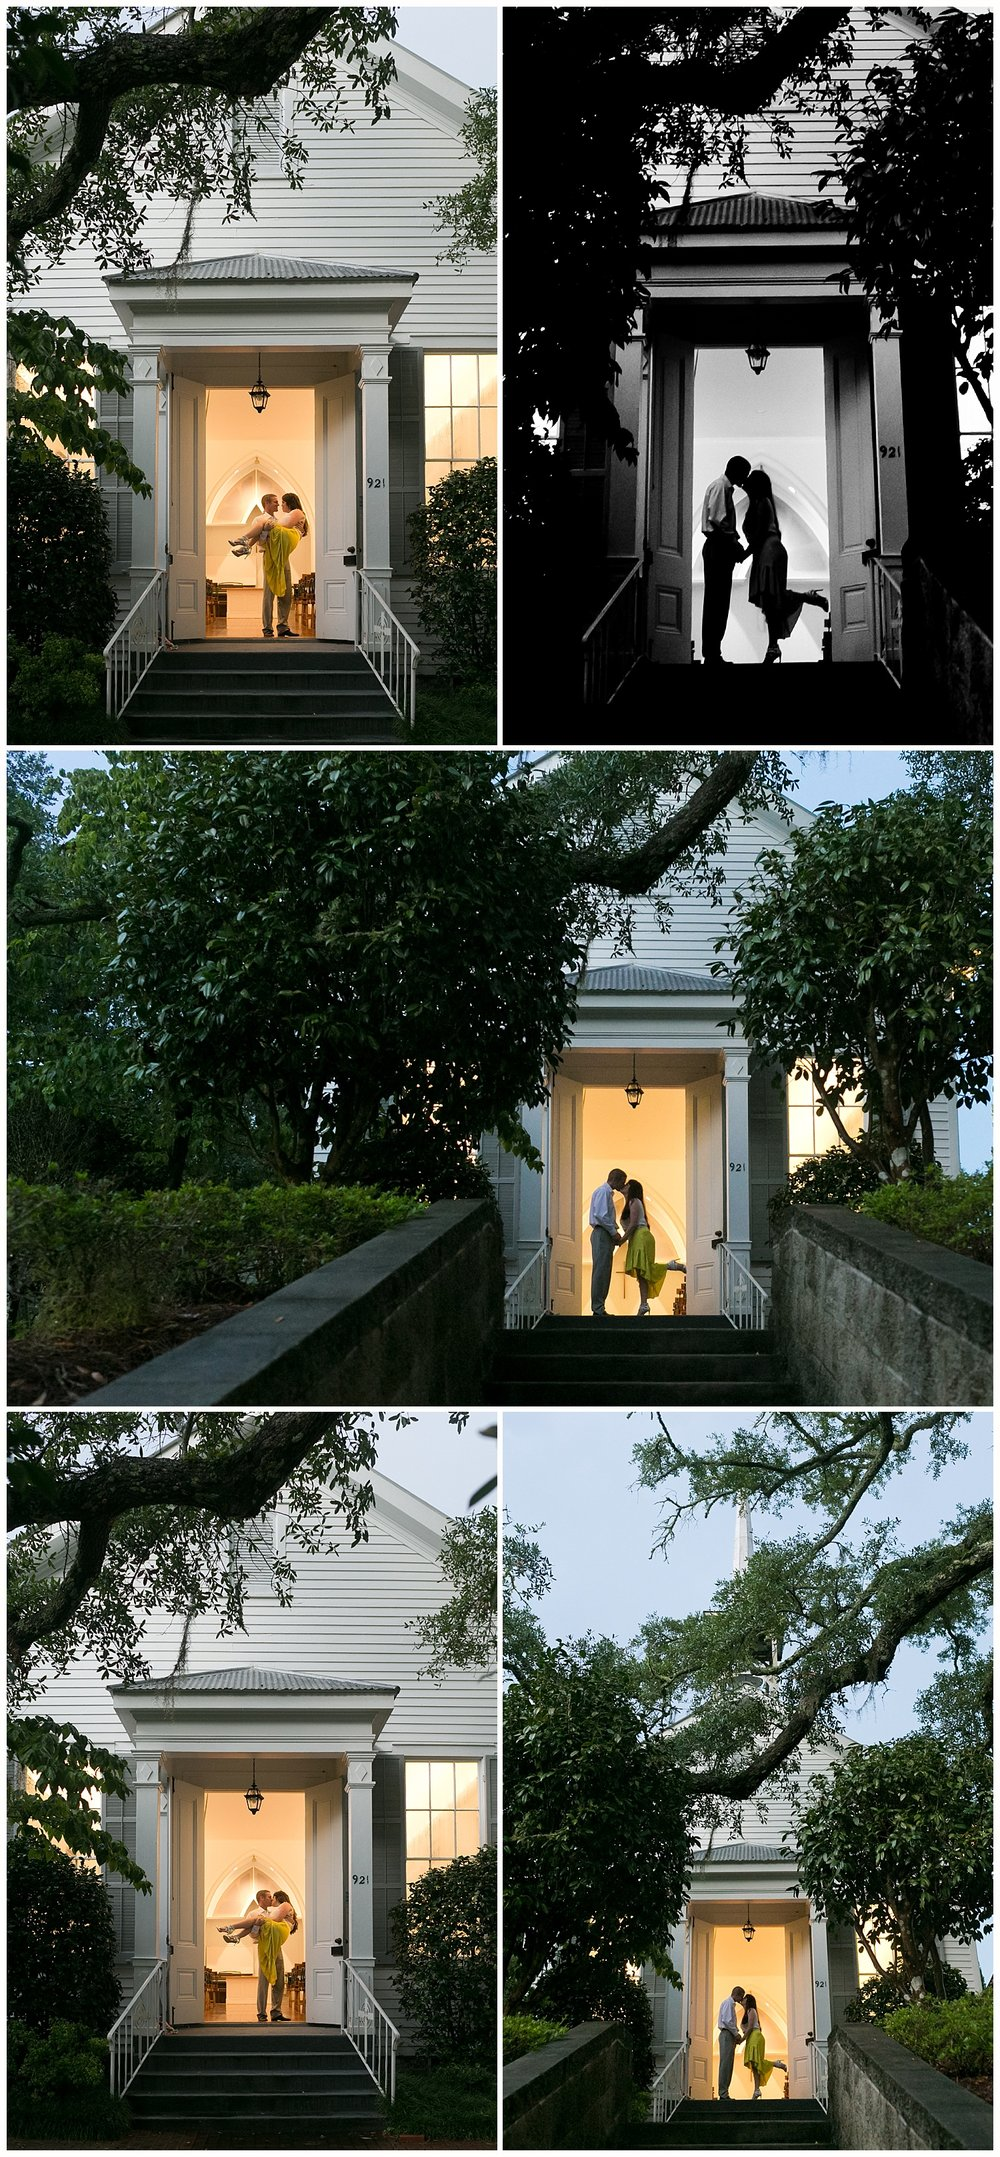 romantic silhouette photos in chapel doorway at night - Ocean Springs wedding photographer Uninvented Colors Photography